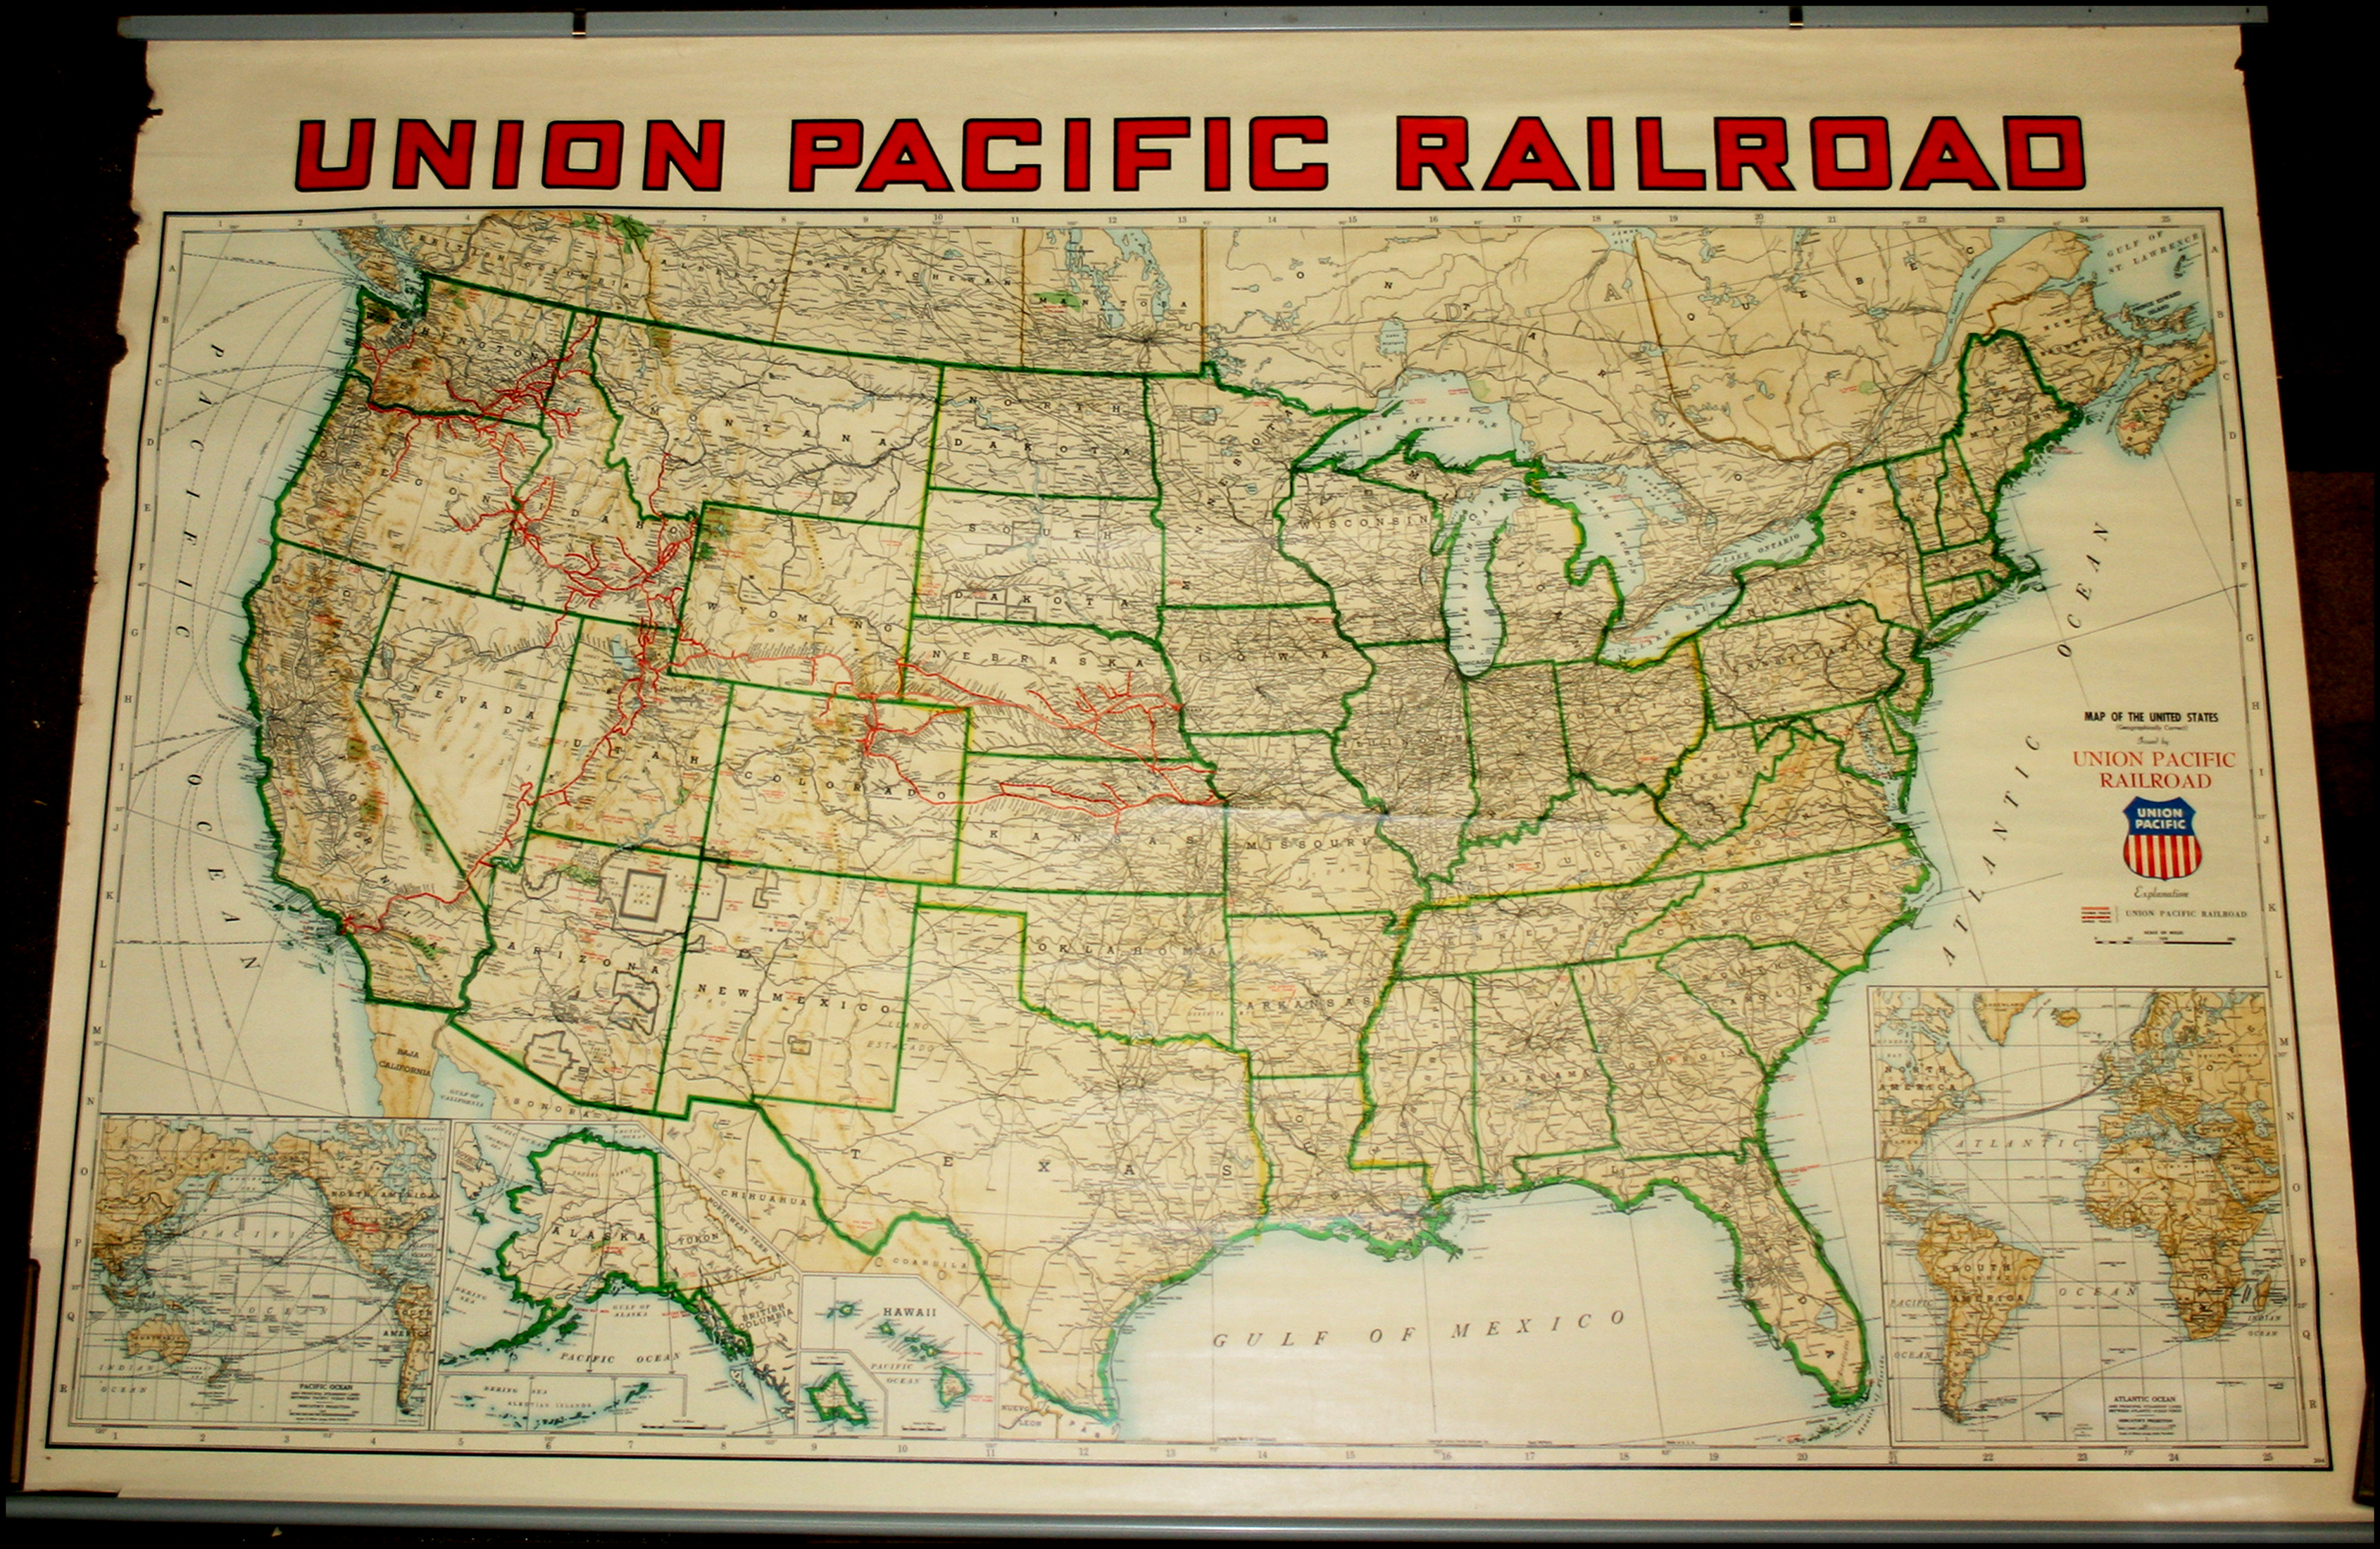 Union Pacific Railroad Map of the United States - Barry ... on union pacific business cars, union pacific idaho map, union pacific service map, rio grande railroad map utah, map of utah, union pacific rail map, union pacific train routes, gold spike utah, union pacific passenger trains, usgs map utah, union pacific dome car, union pacific track map, union pacific overland, union pacific network map, union pacific salt lake city, union pacific railway map, union pacific elko nv, union pacific nebraska, union pacific dining car menus, union pacific subdivisions map,